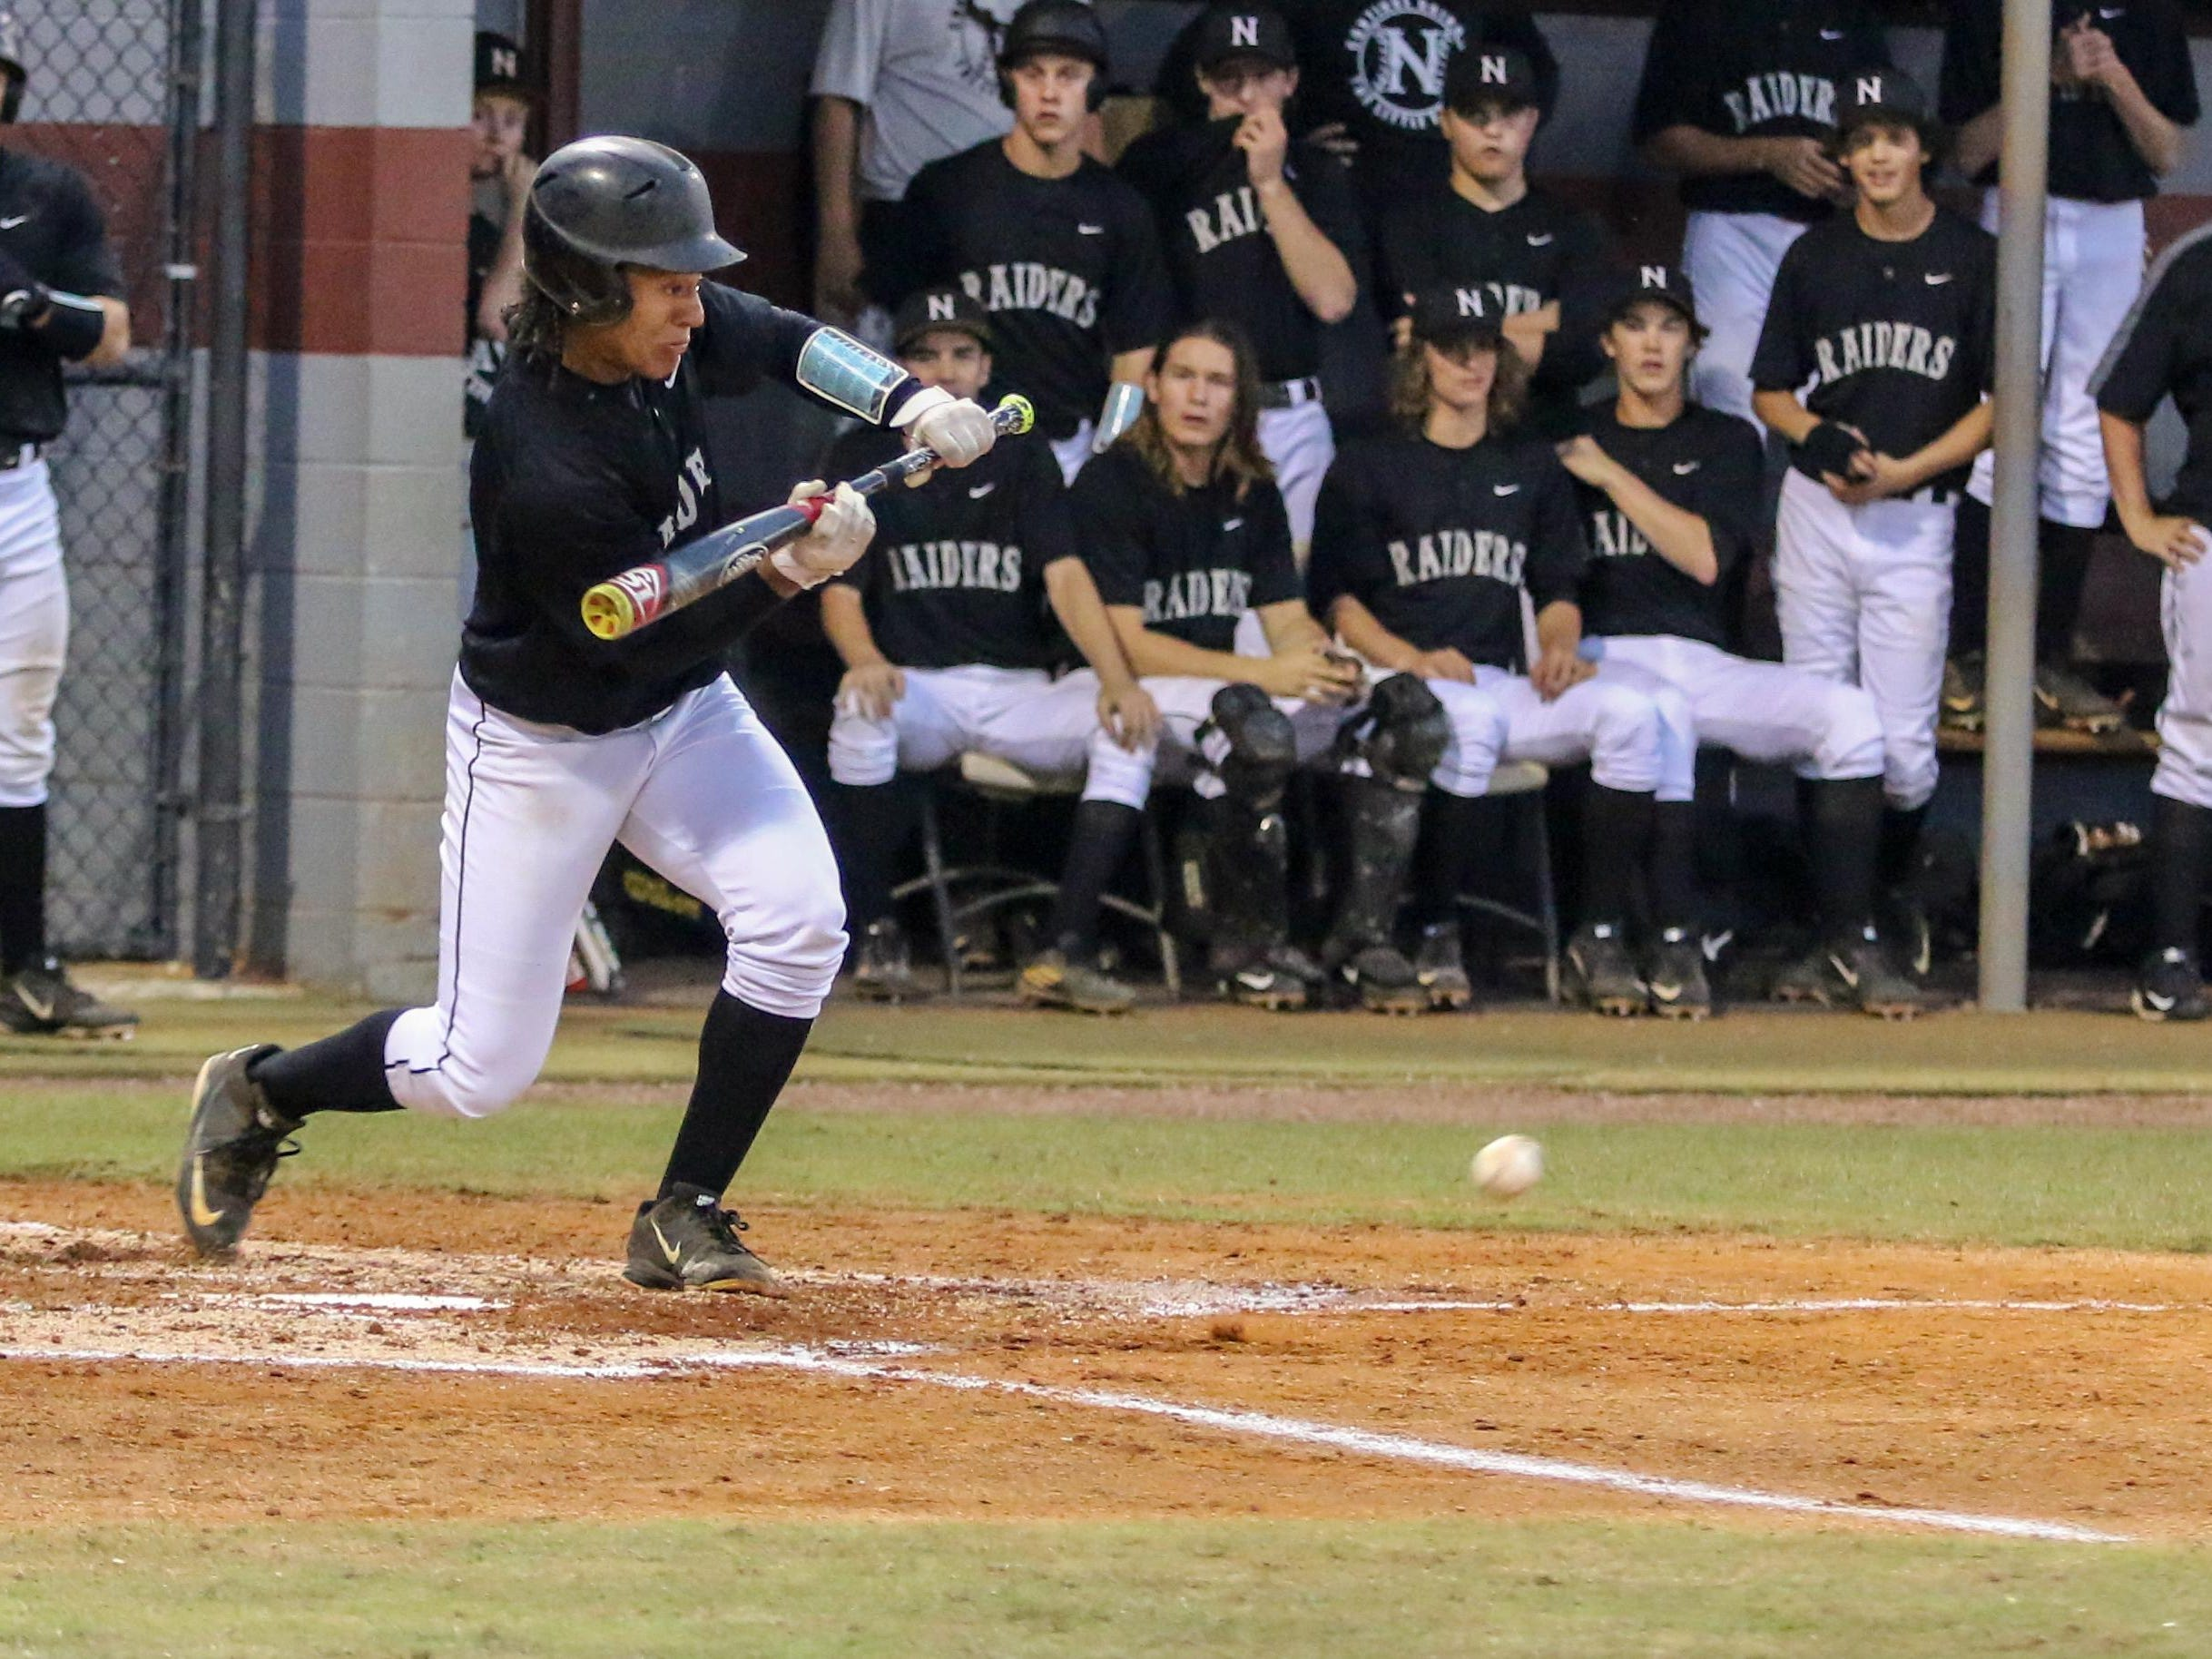 Navarre's Octavien Moyer lays down a sacrifice bunt to advance the runners to third and second bases Wednesday night during the Region 7A quarterfinal game at Tate High School.